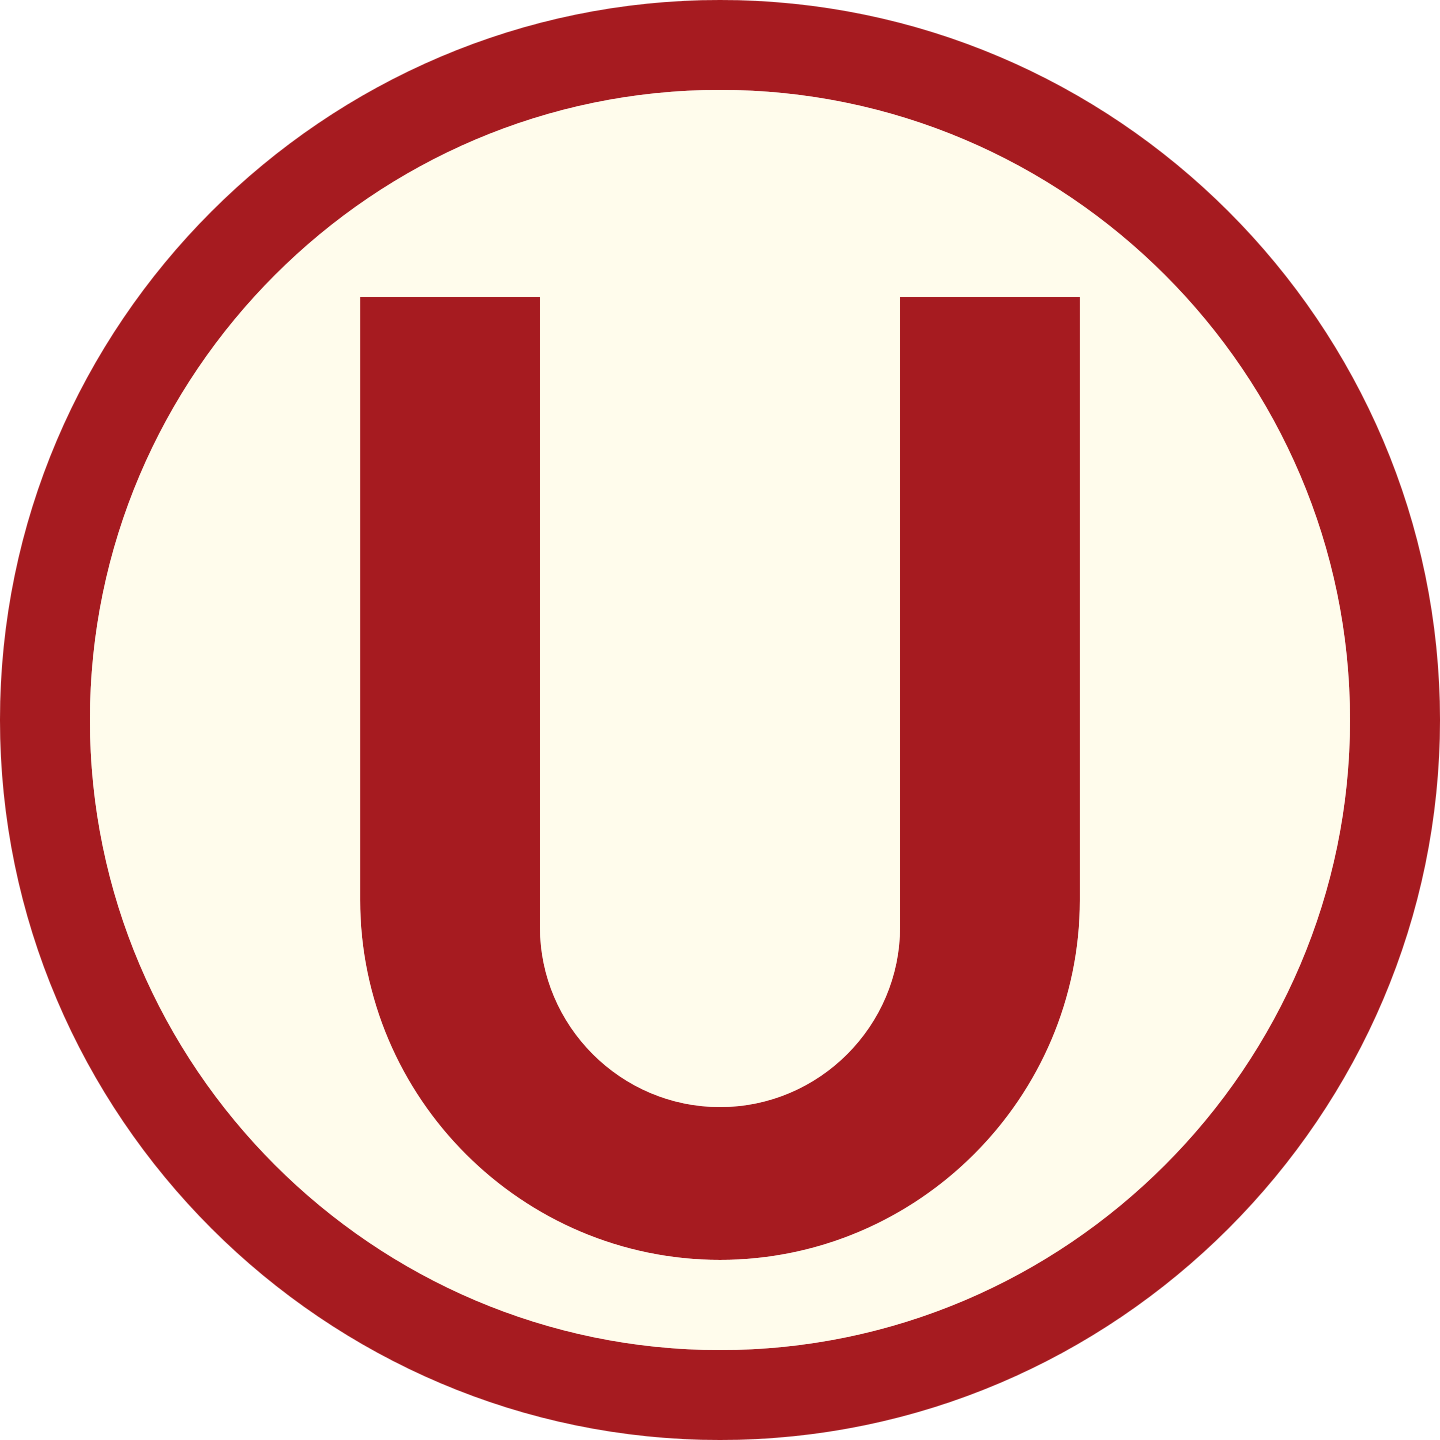 universitario fc logo escudo 2 - Universitario Logo